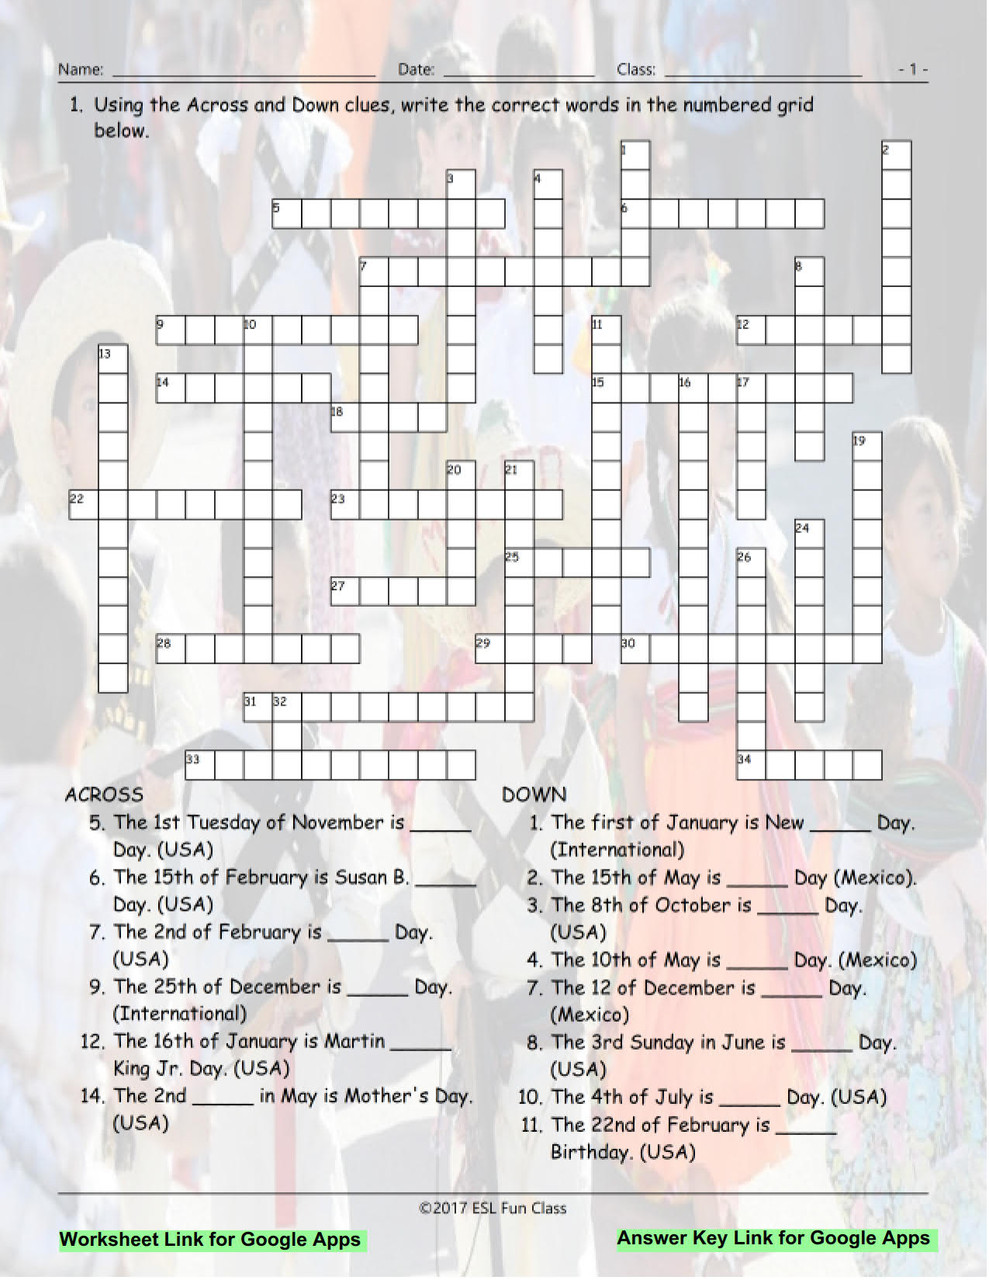 American vs Mexican Holidays Interactive Crossword Puzzle for Google Apps  LINKS - Amped Up Learning [ 1280 x 989 Pixel ]